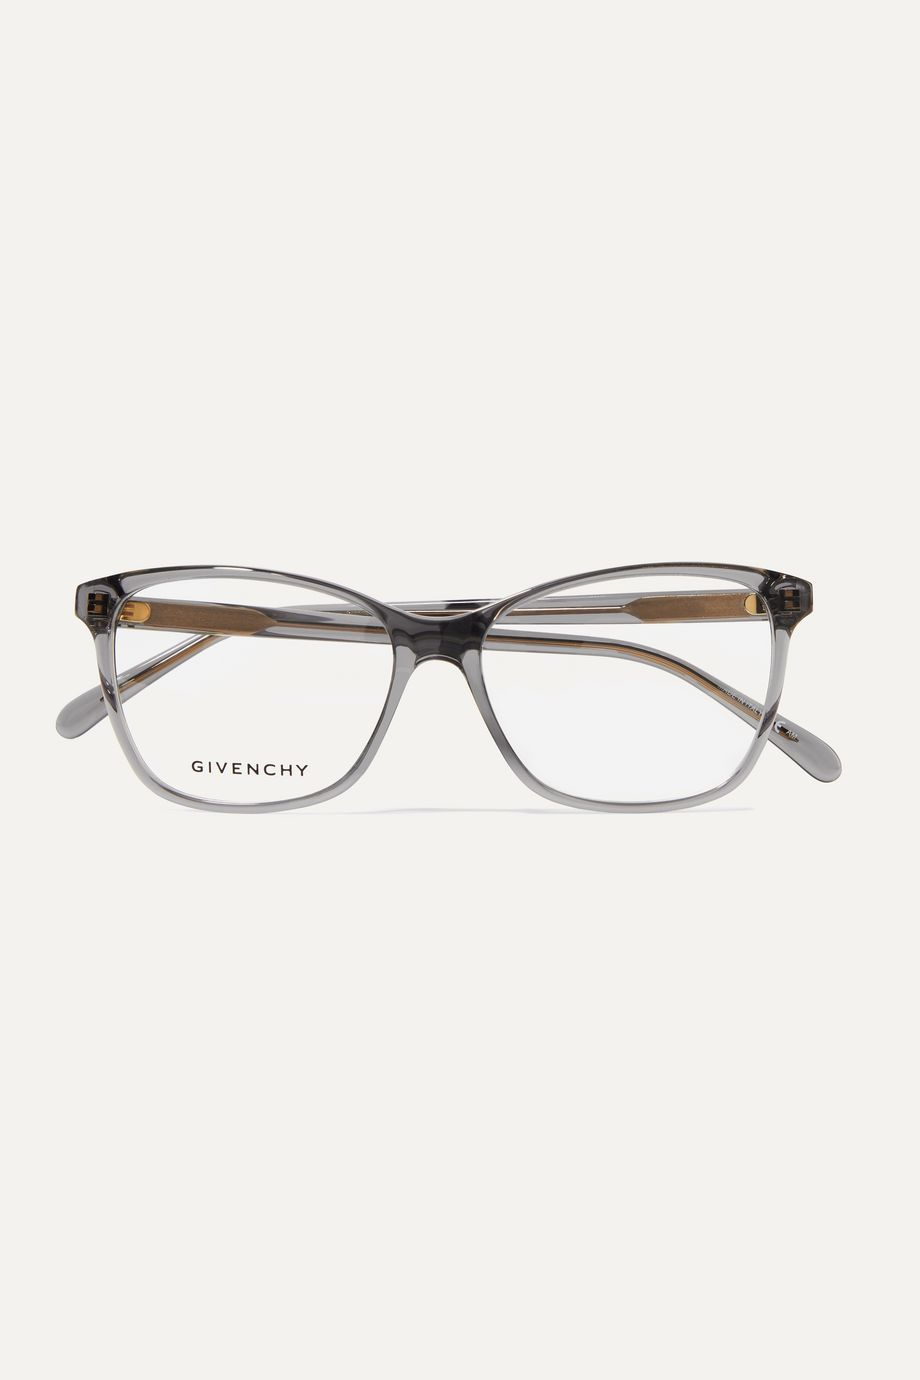 Givenchy D-frame acetate and gold-tone optical glasses